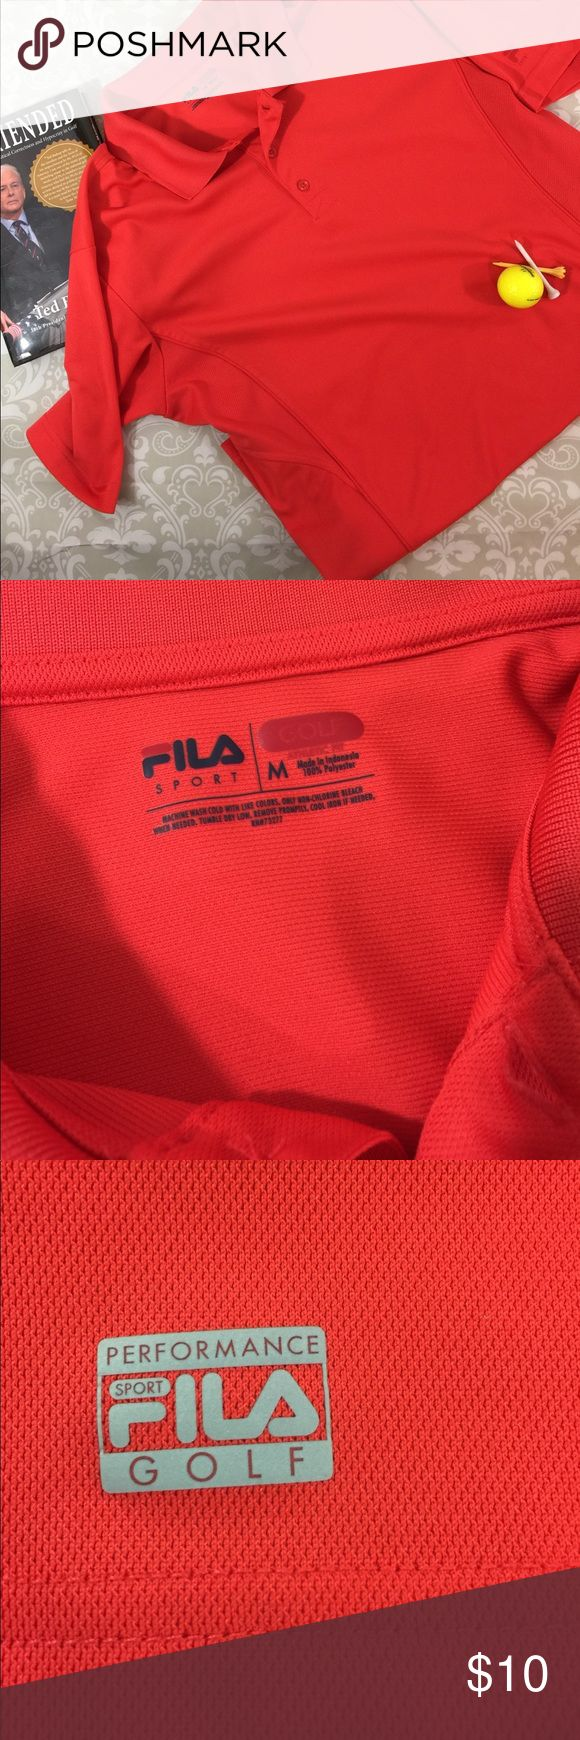 FILA Golf Shirt  Size M This is a gorgeous coral color FILA golf shirt.  Like new condition. Size M. Bundle your likes for a private discount!   Thank you for shopping my closet.  😊 Fila Shirts Polos